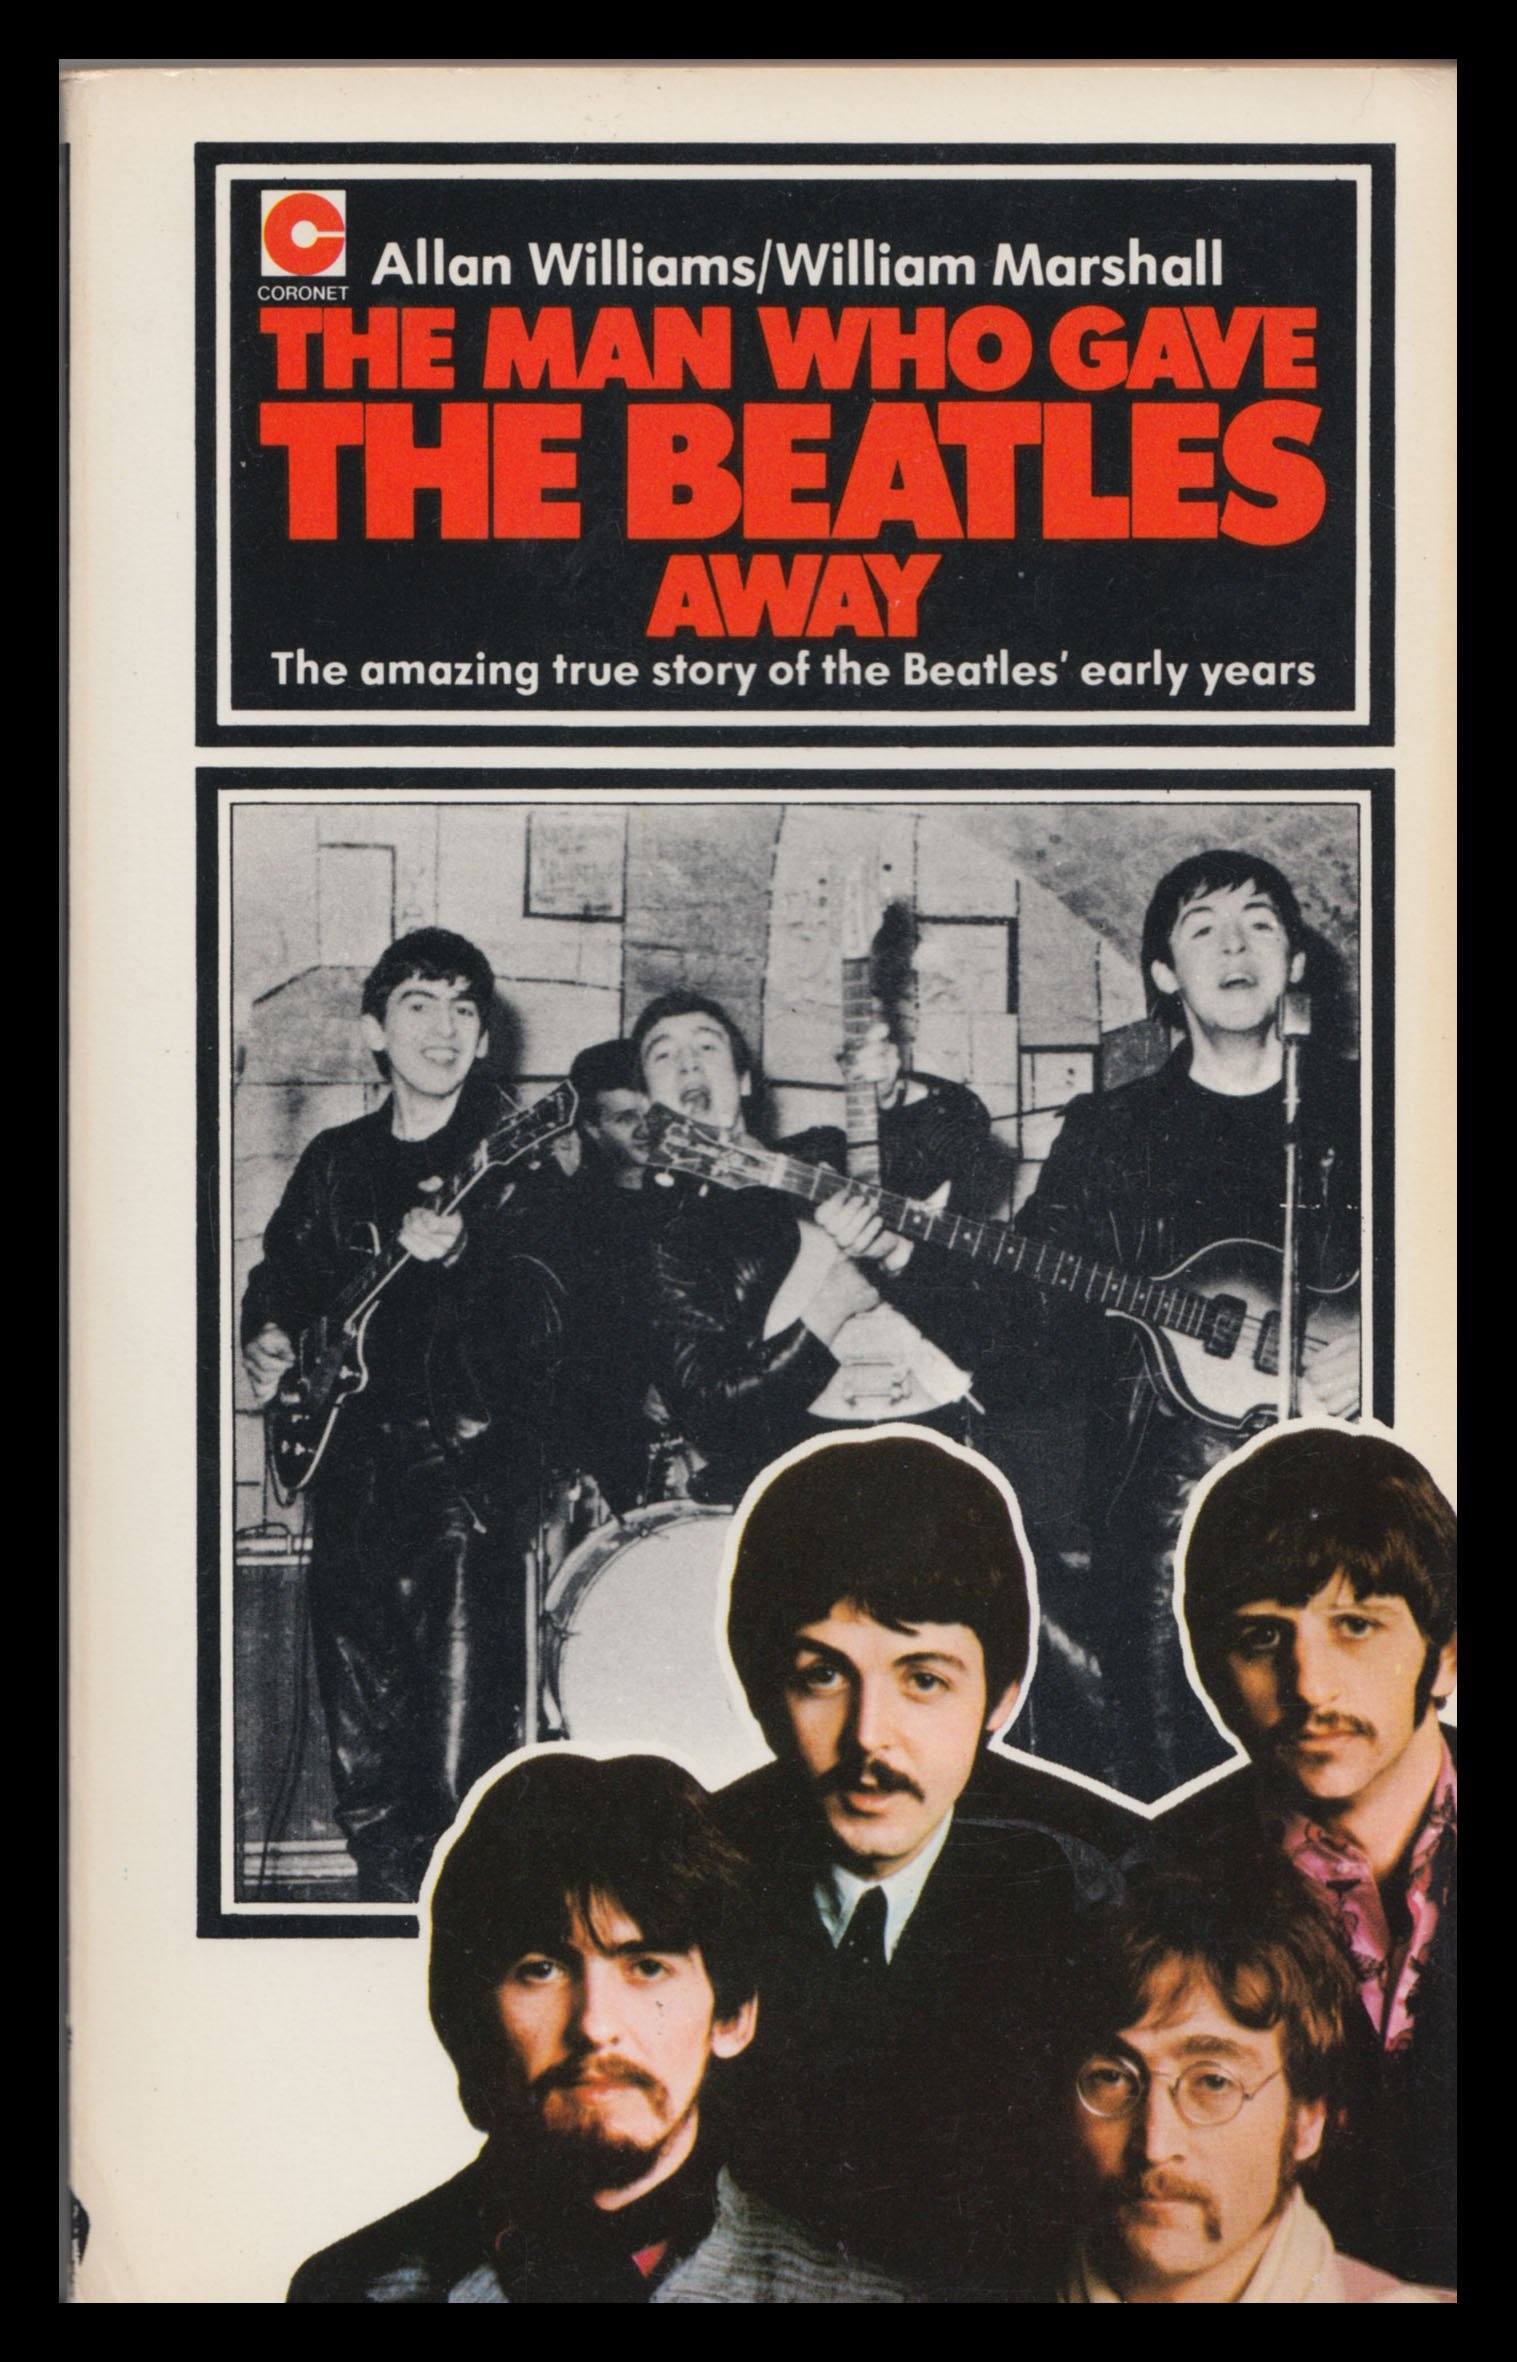 the man who gave the beatles away